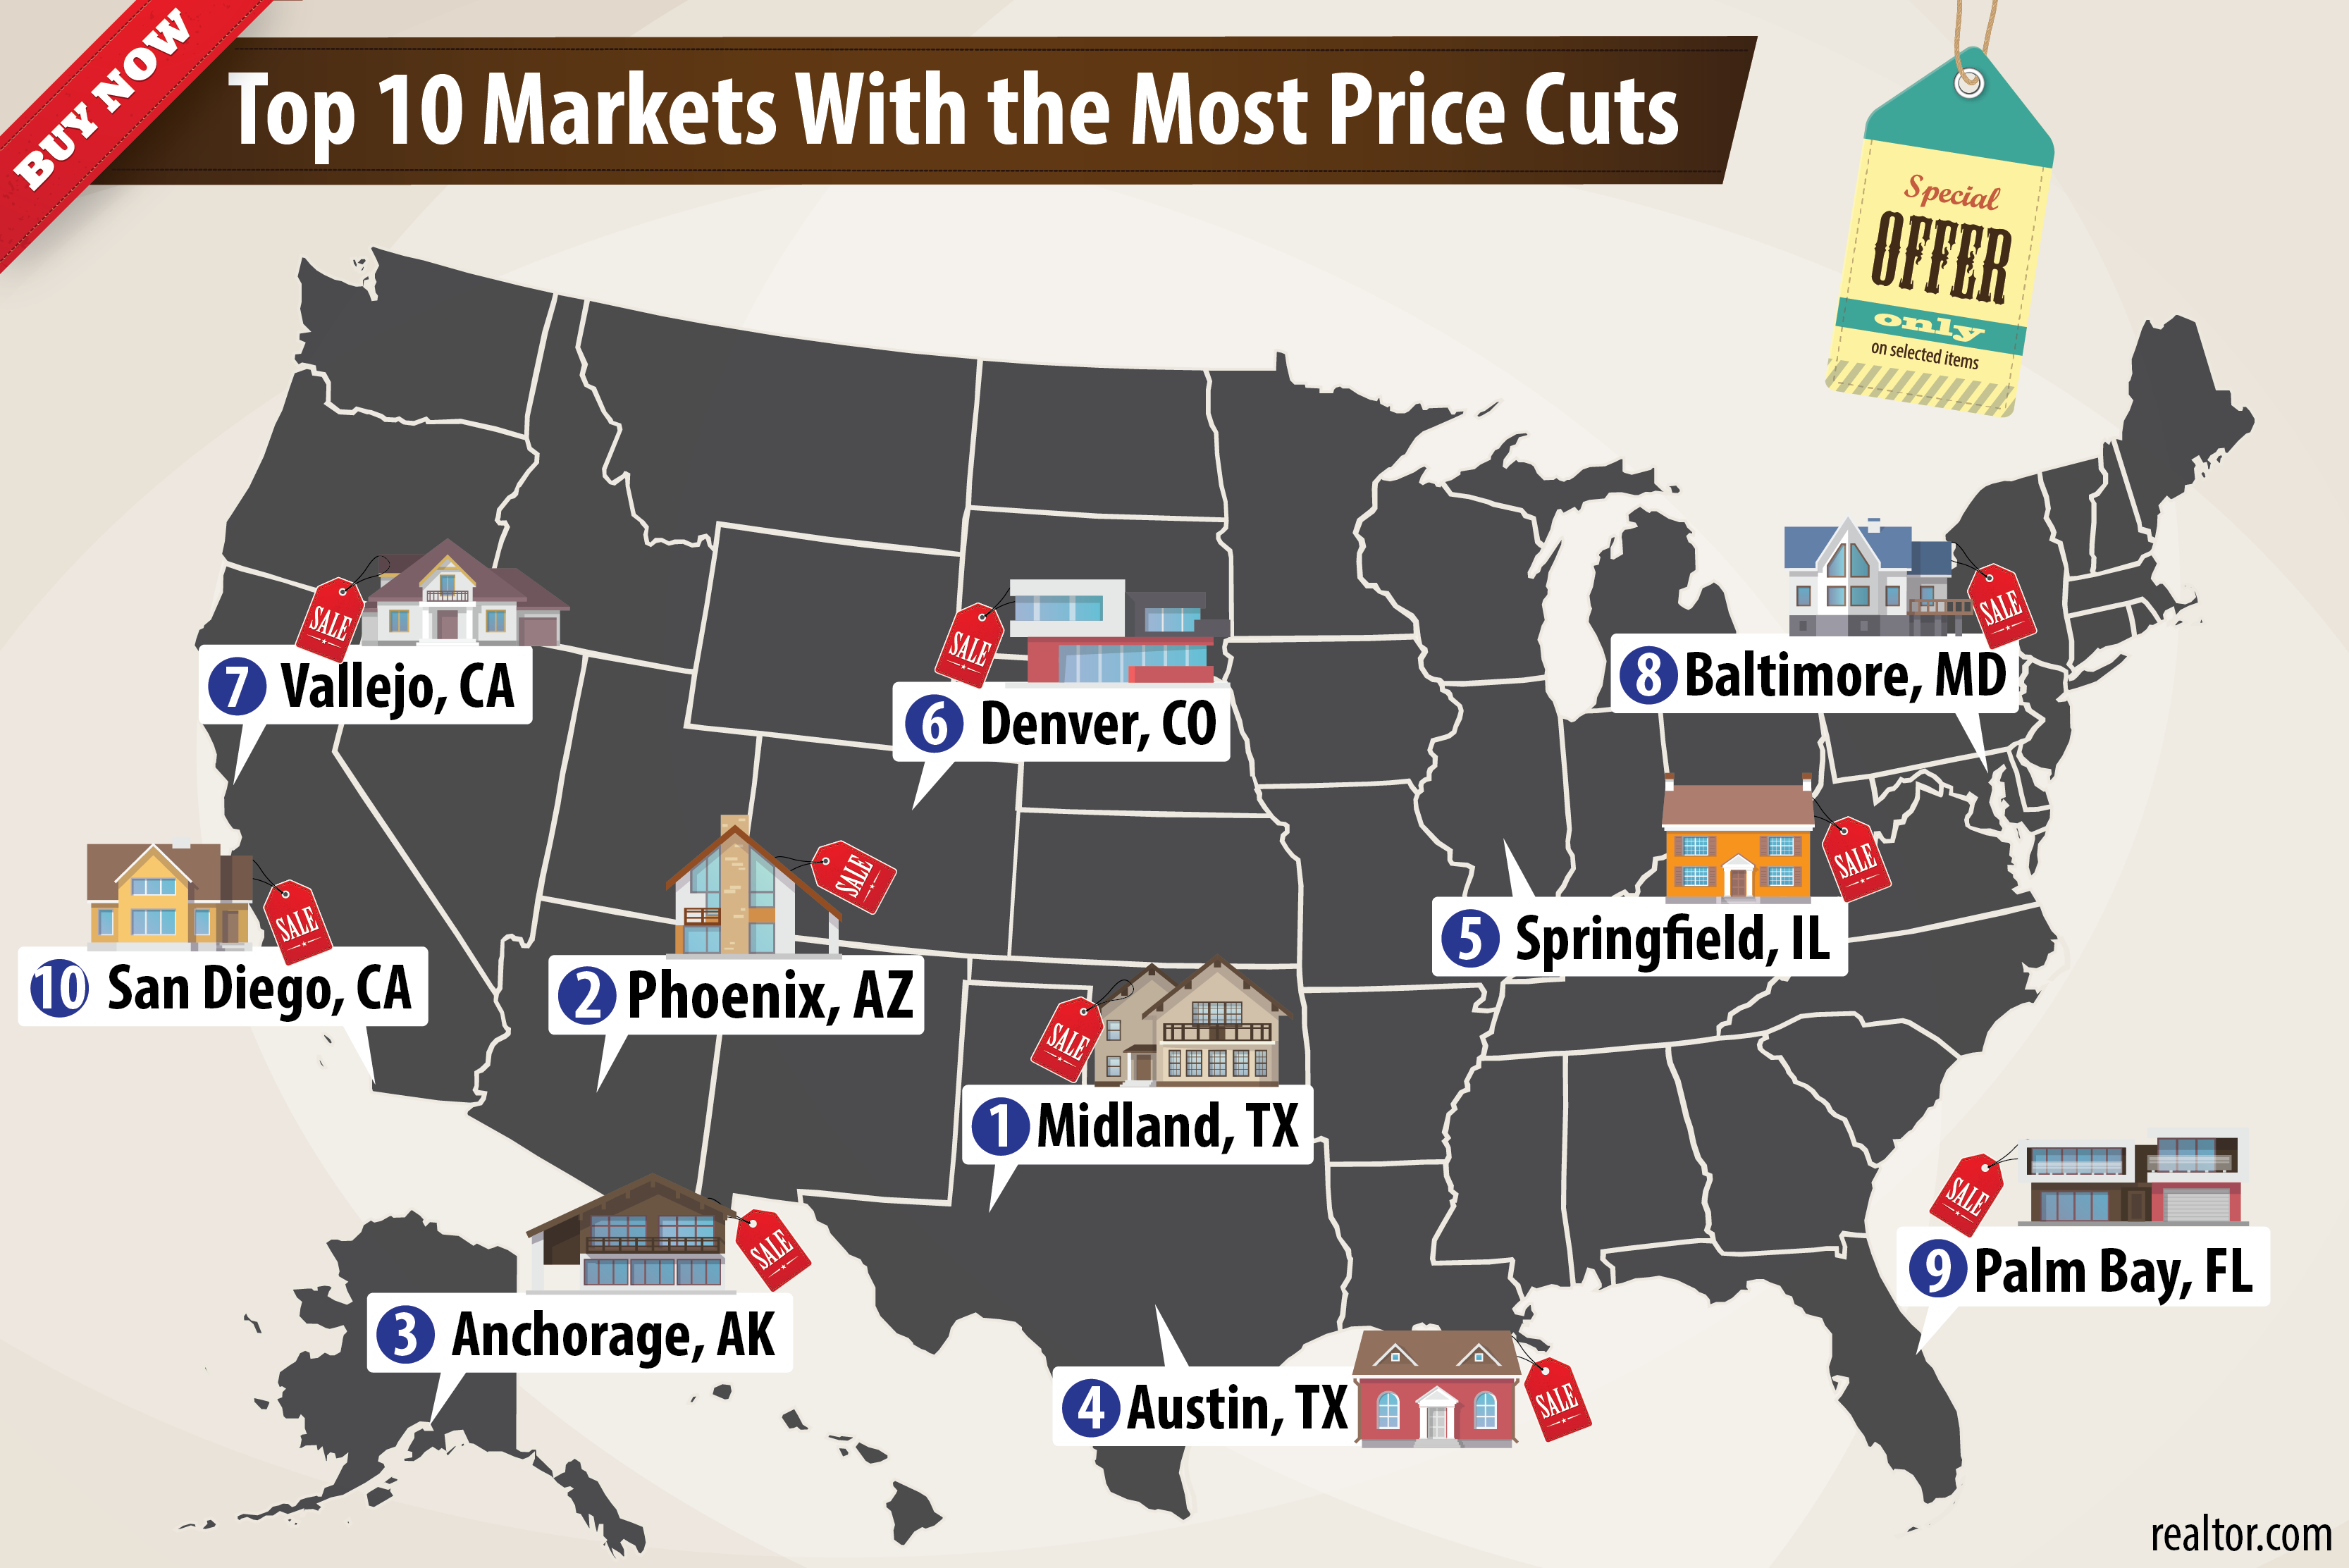 Buyers Market and The Top 10 U.S. Markets For Price Reduction